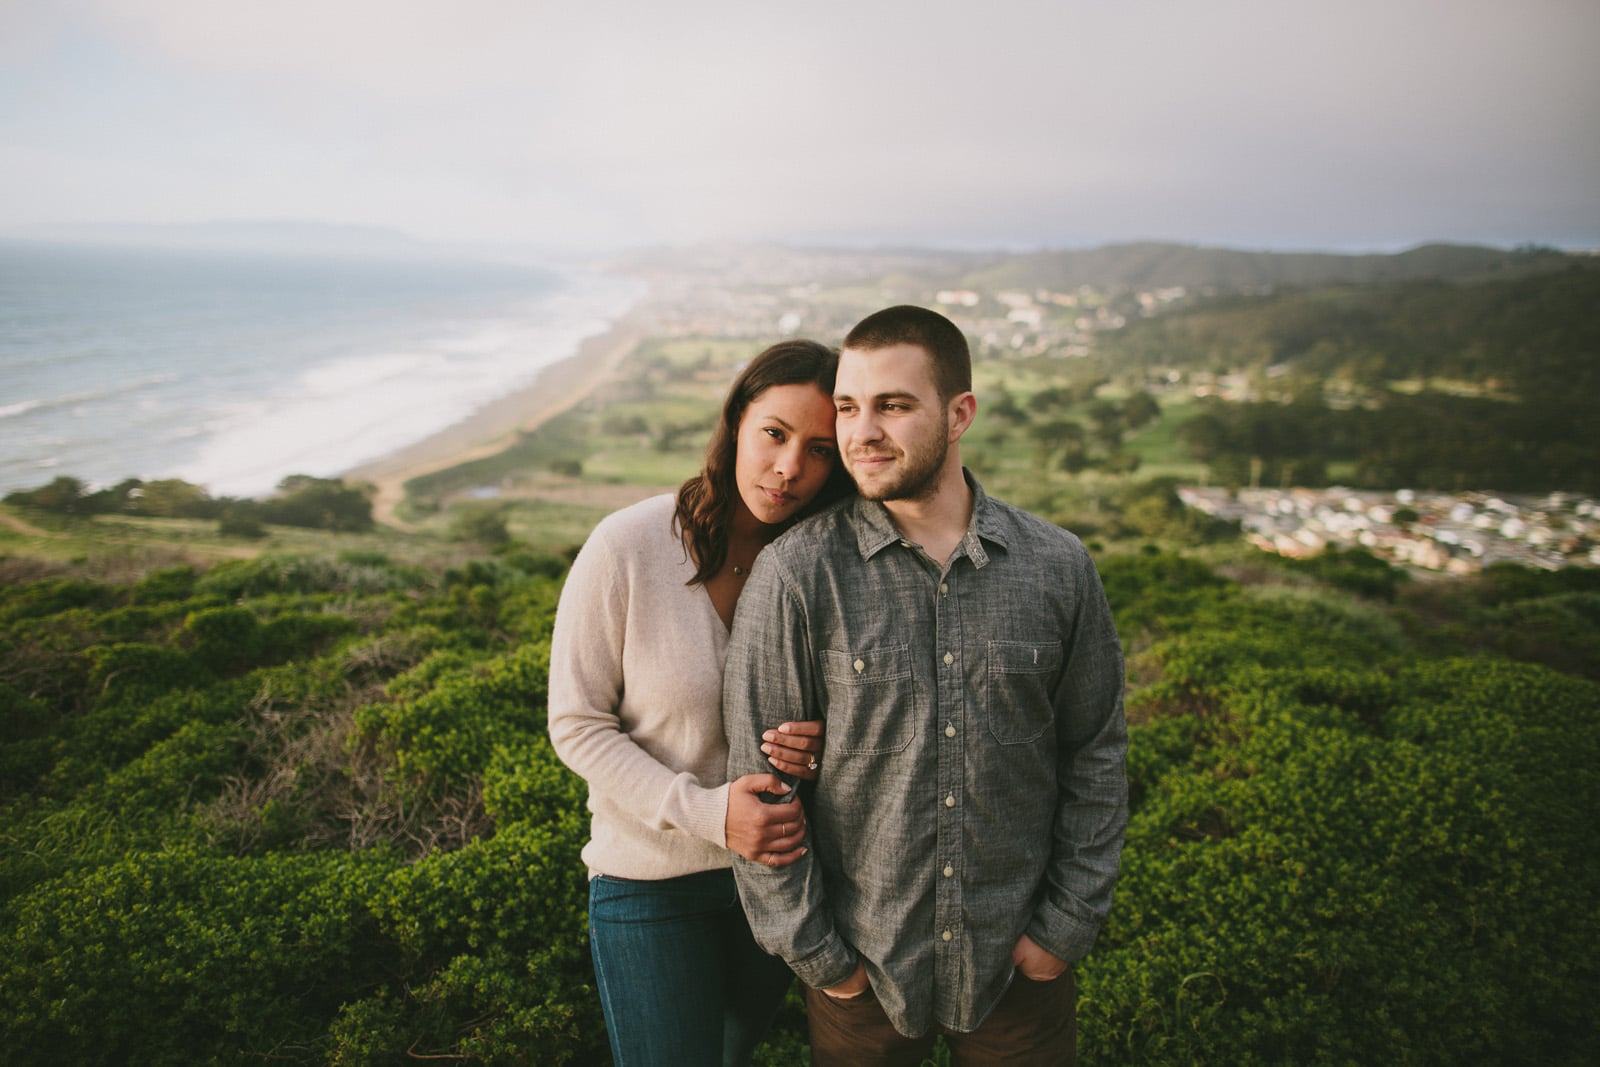 San_Francisco_Engagment_Session_Beach_Engagment_Session_012